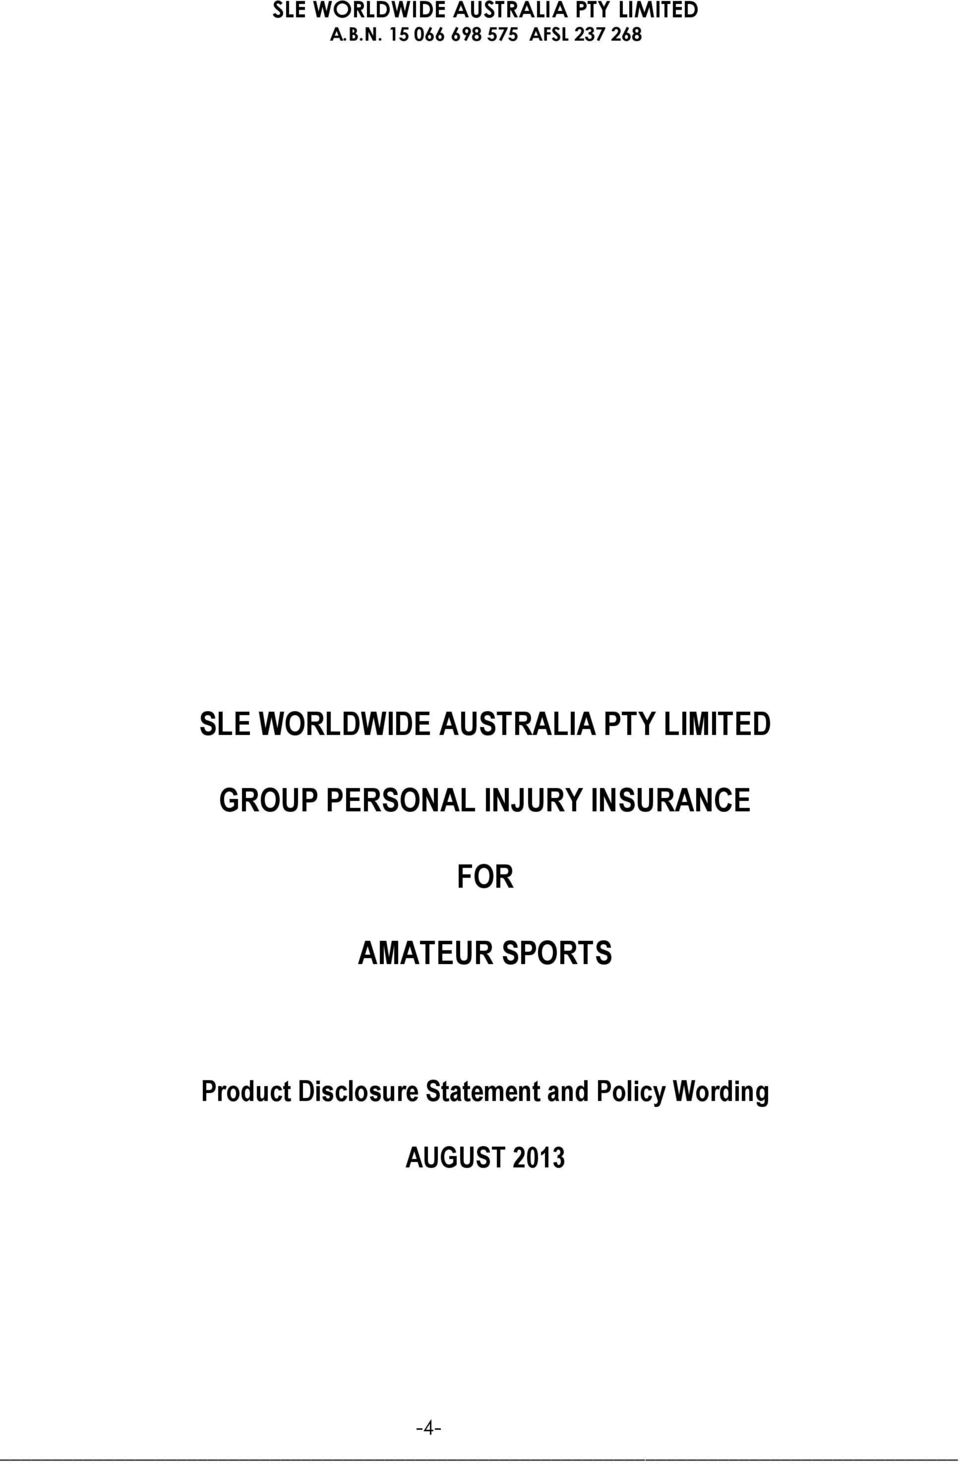 AMATEUR SPORTS Product Disclosure